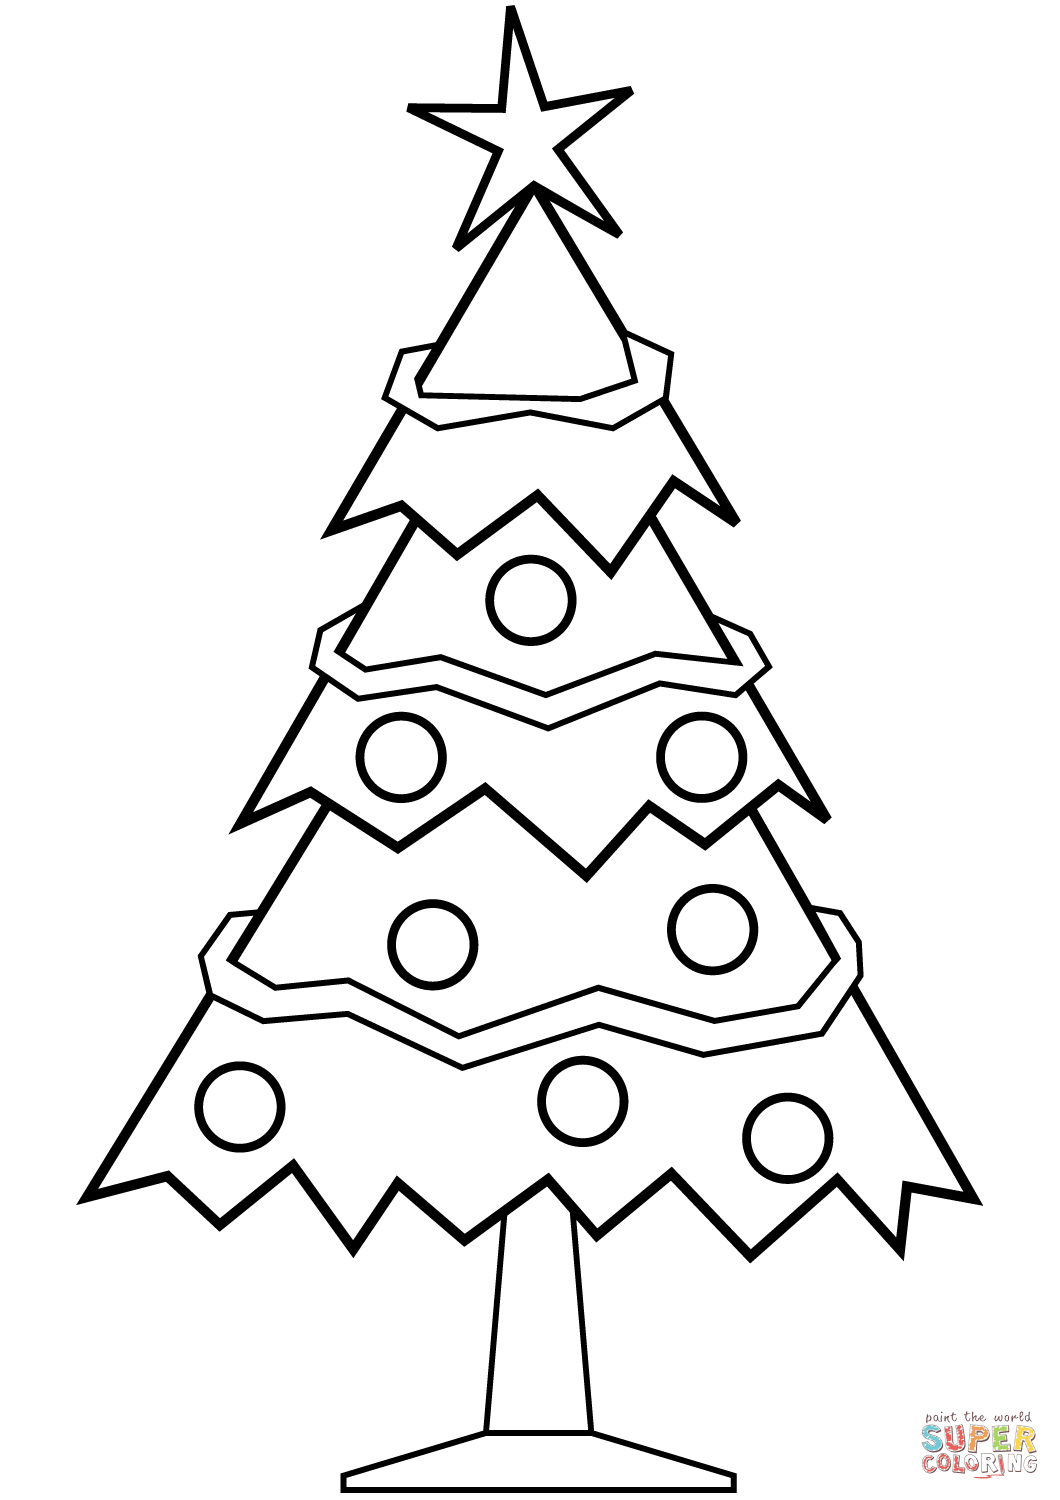 1060x1500 Simple Christmas Tree Coloring Page Free Printable Pages Best